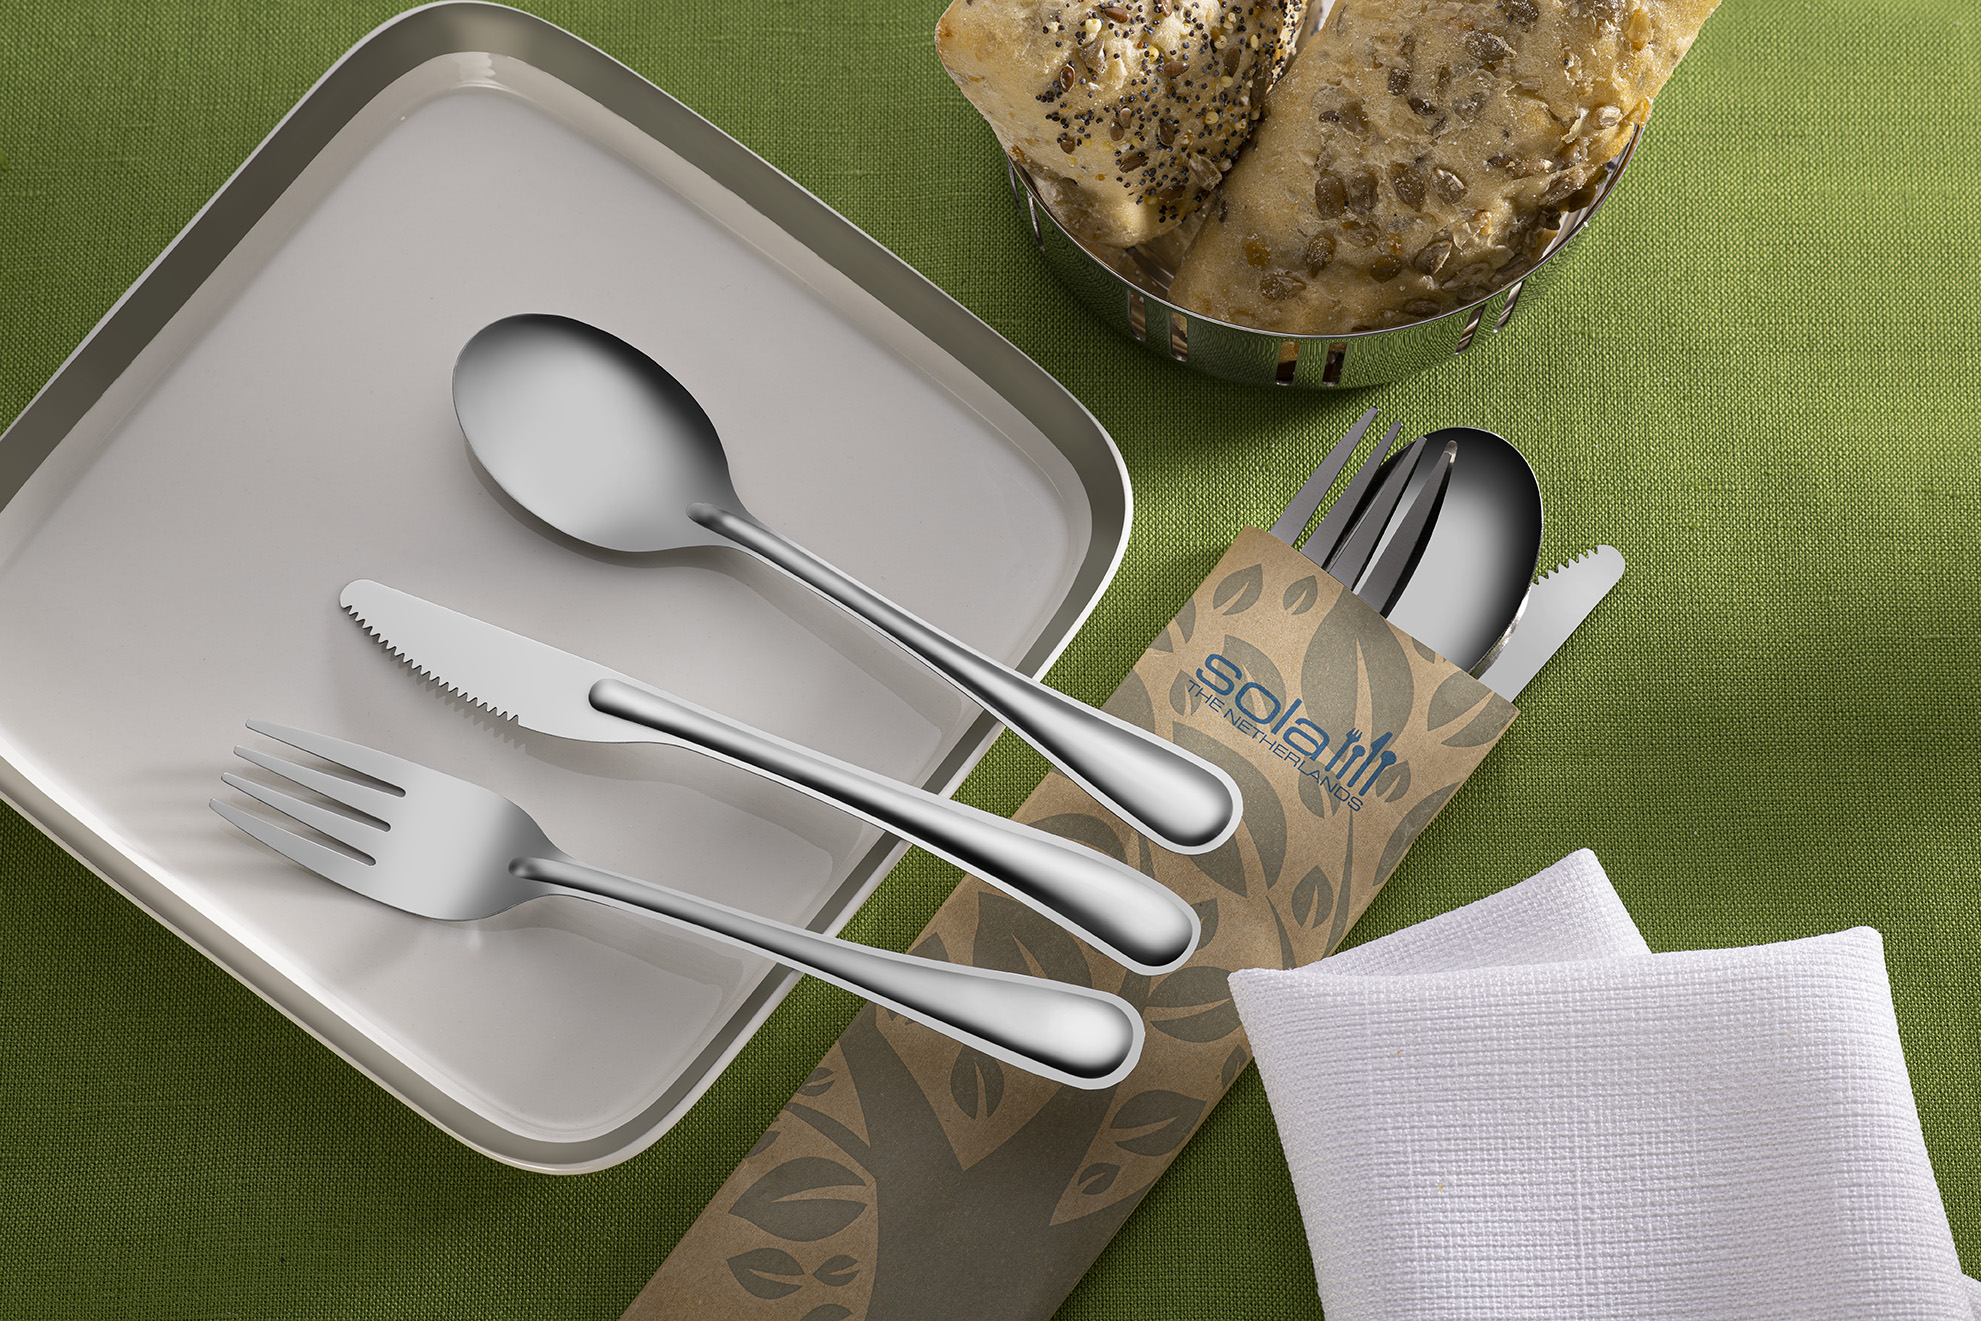 The ideal replacement of plastic cutlery